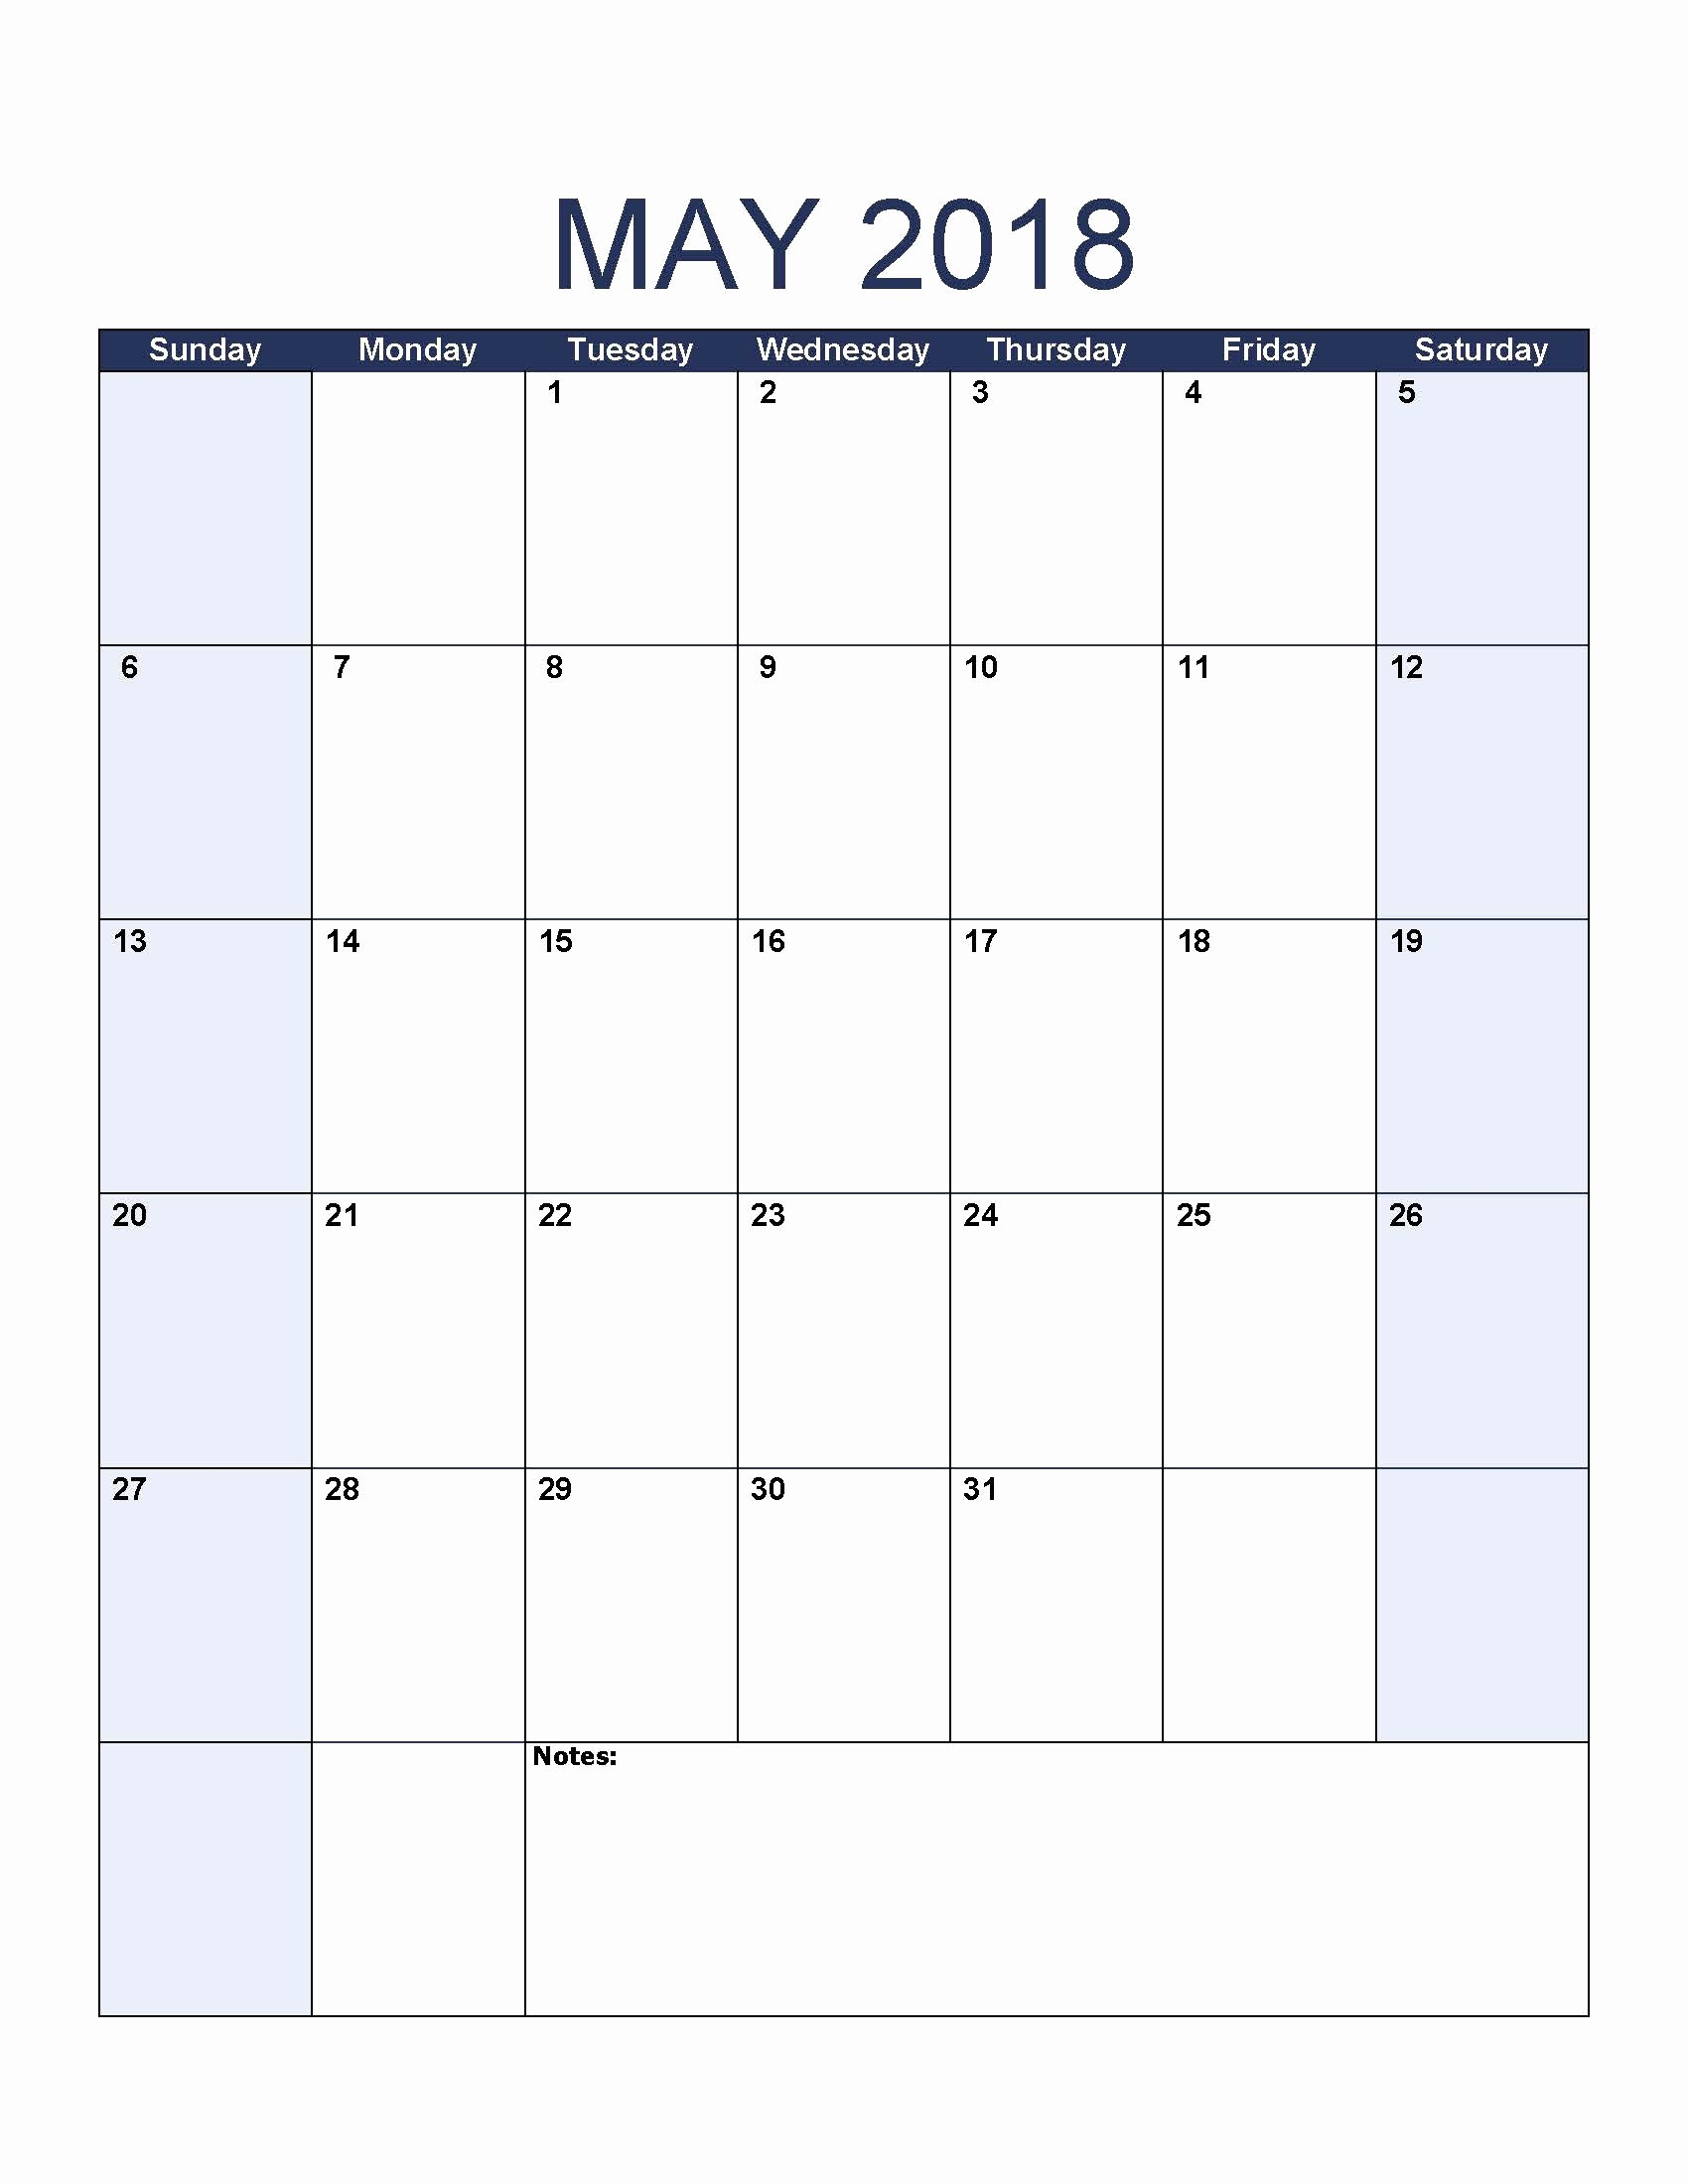 Free May 2018 Calendar Template Awesome May 2018 Calendar Template